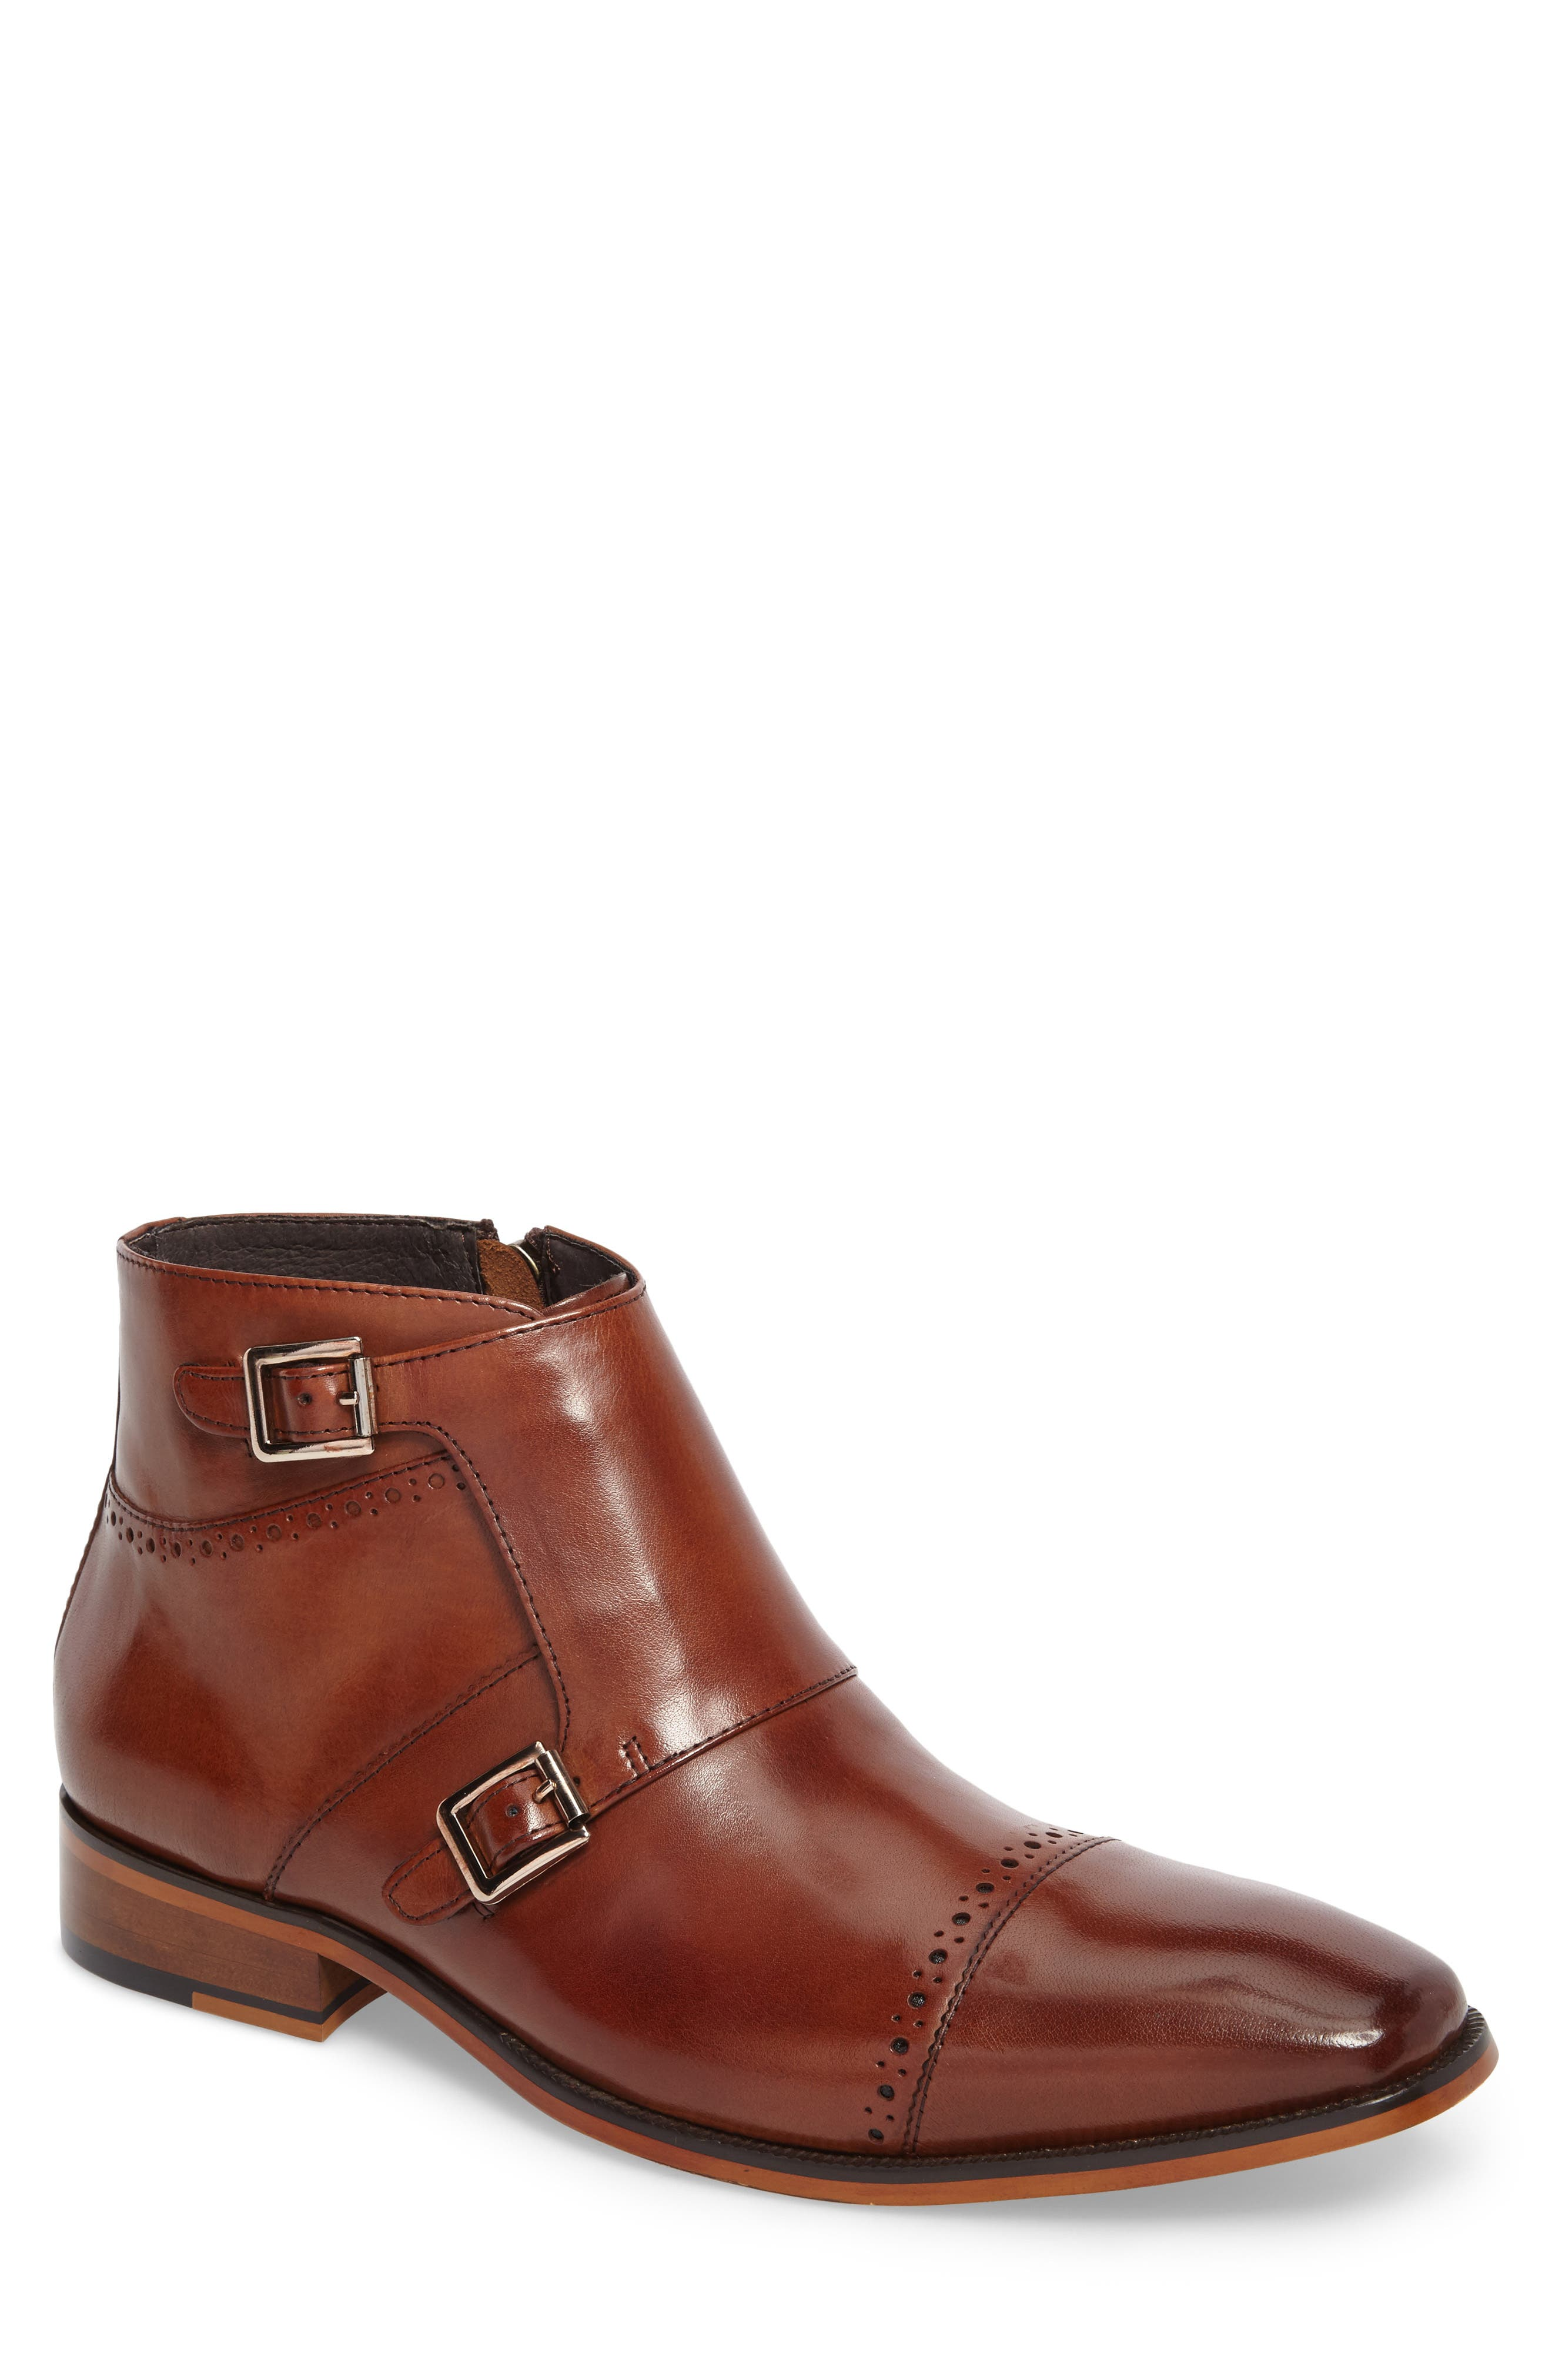 Main Image - Stacy Adams Kason Double Monk Strap Boot (Men)